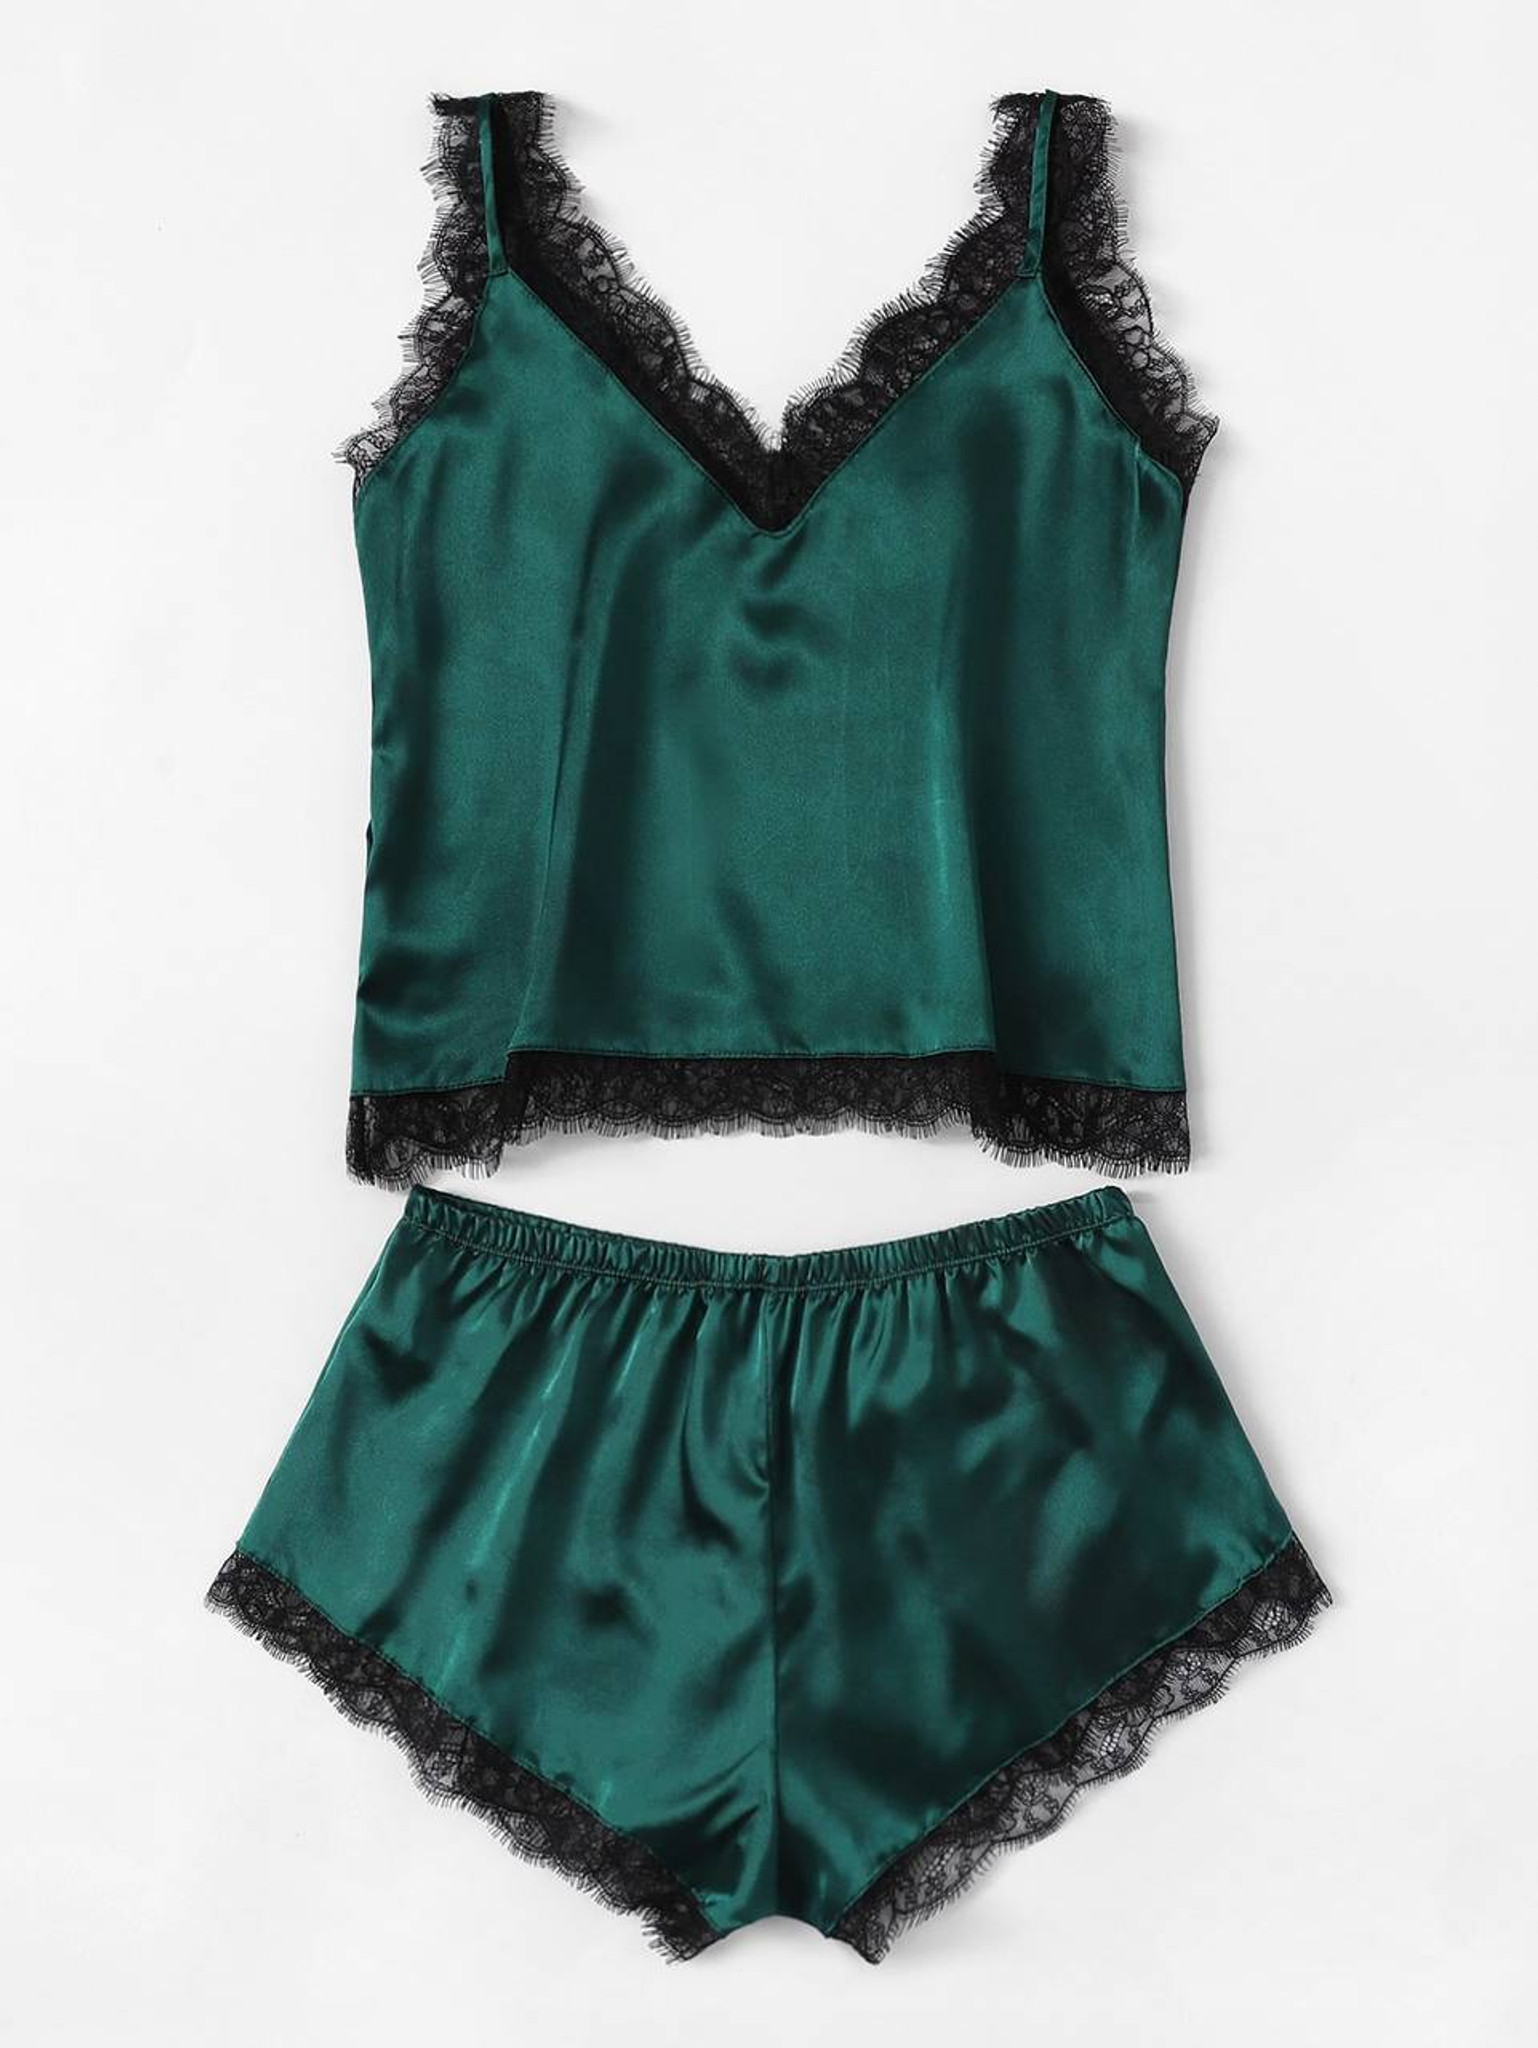 Fifth Avenue Women's NSS27 Lace Trim Tank Top and Shorts Satin Set - Green